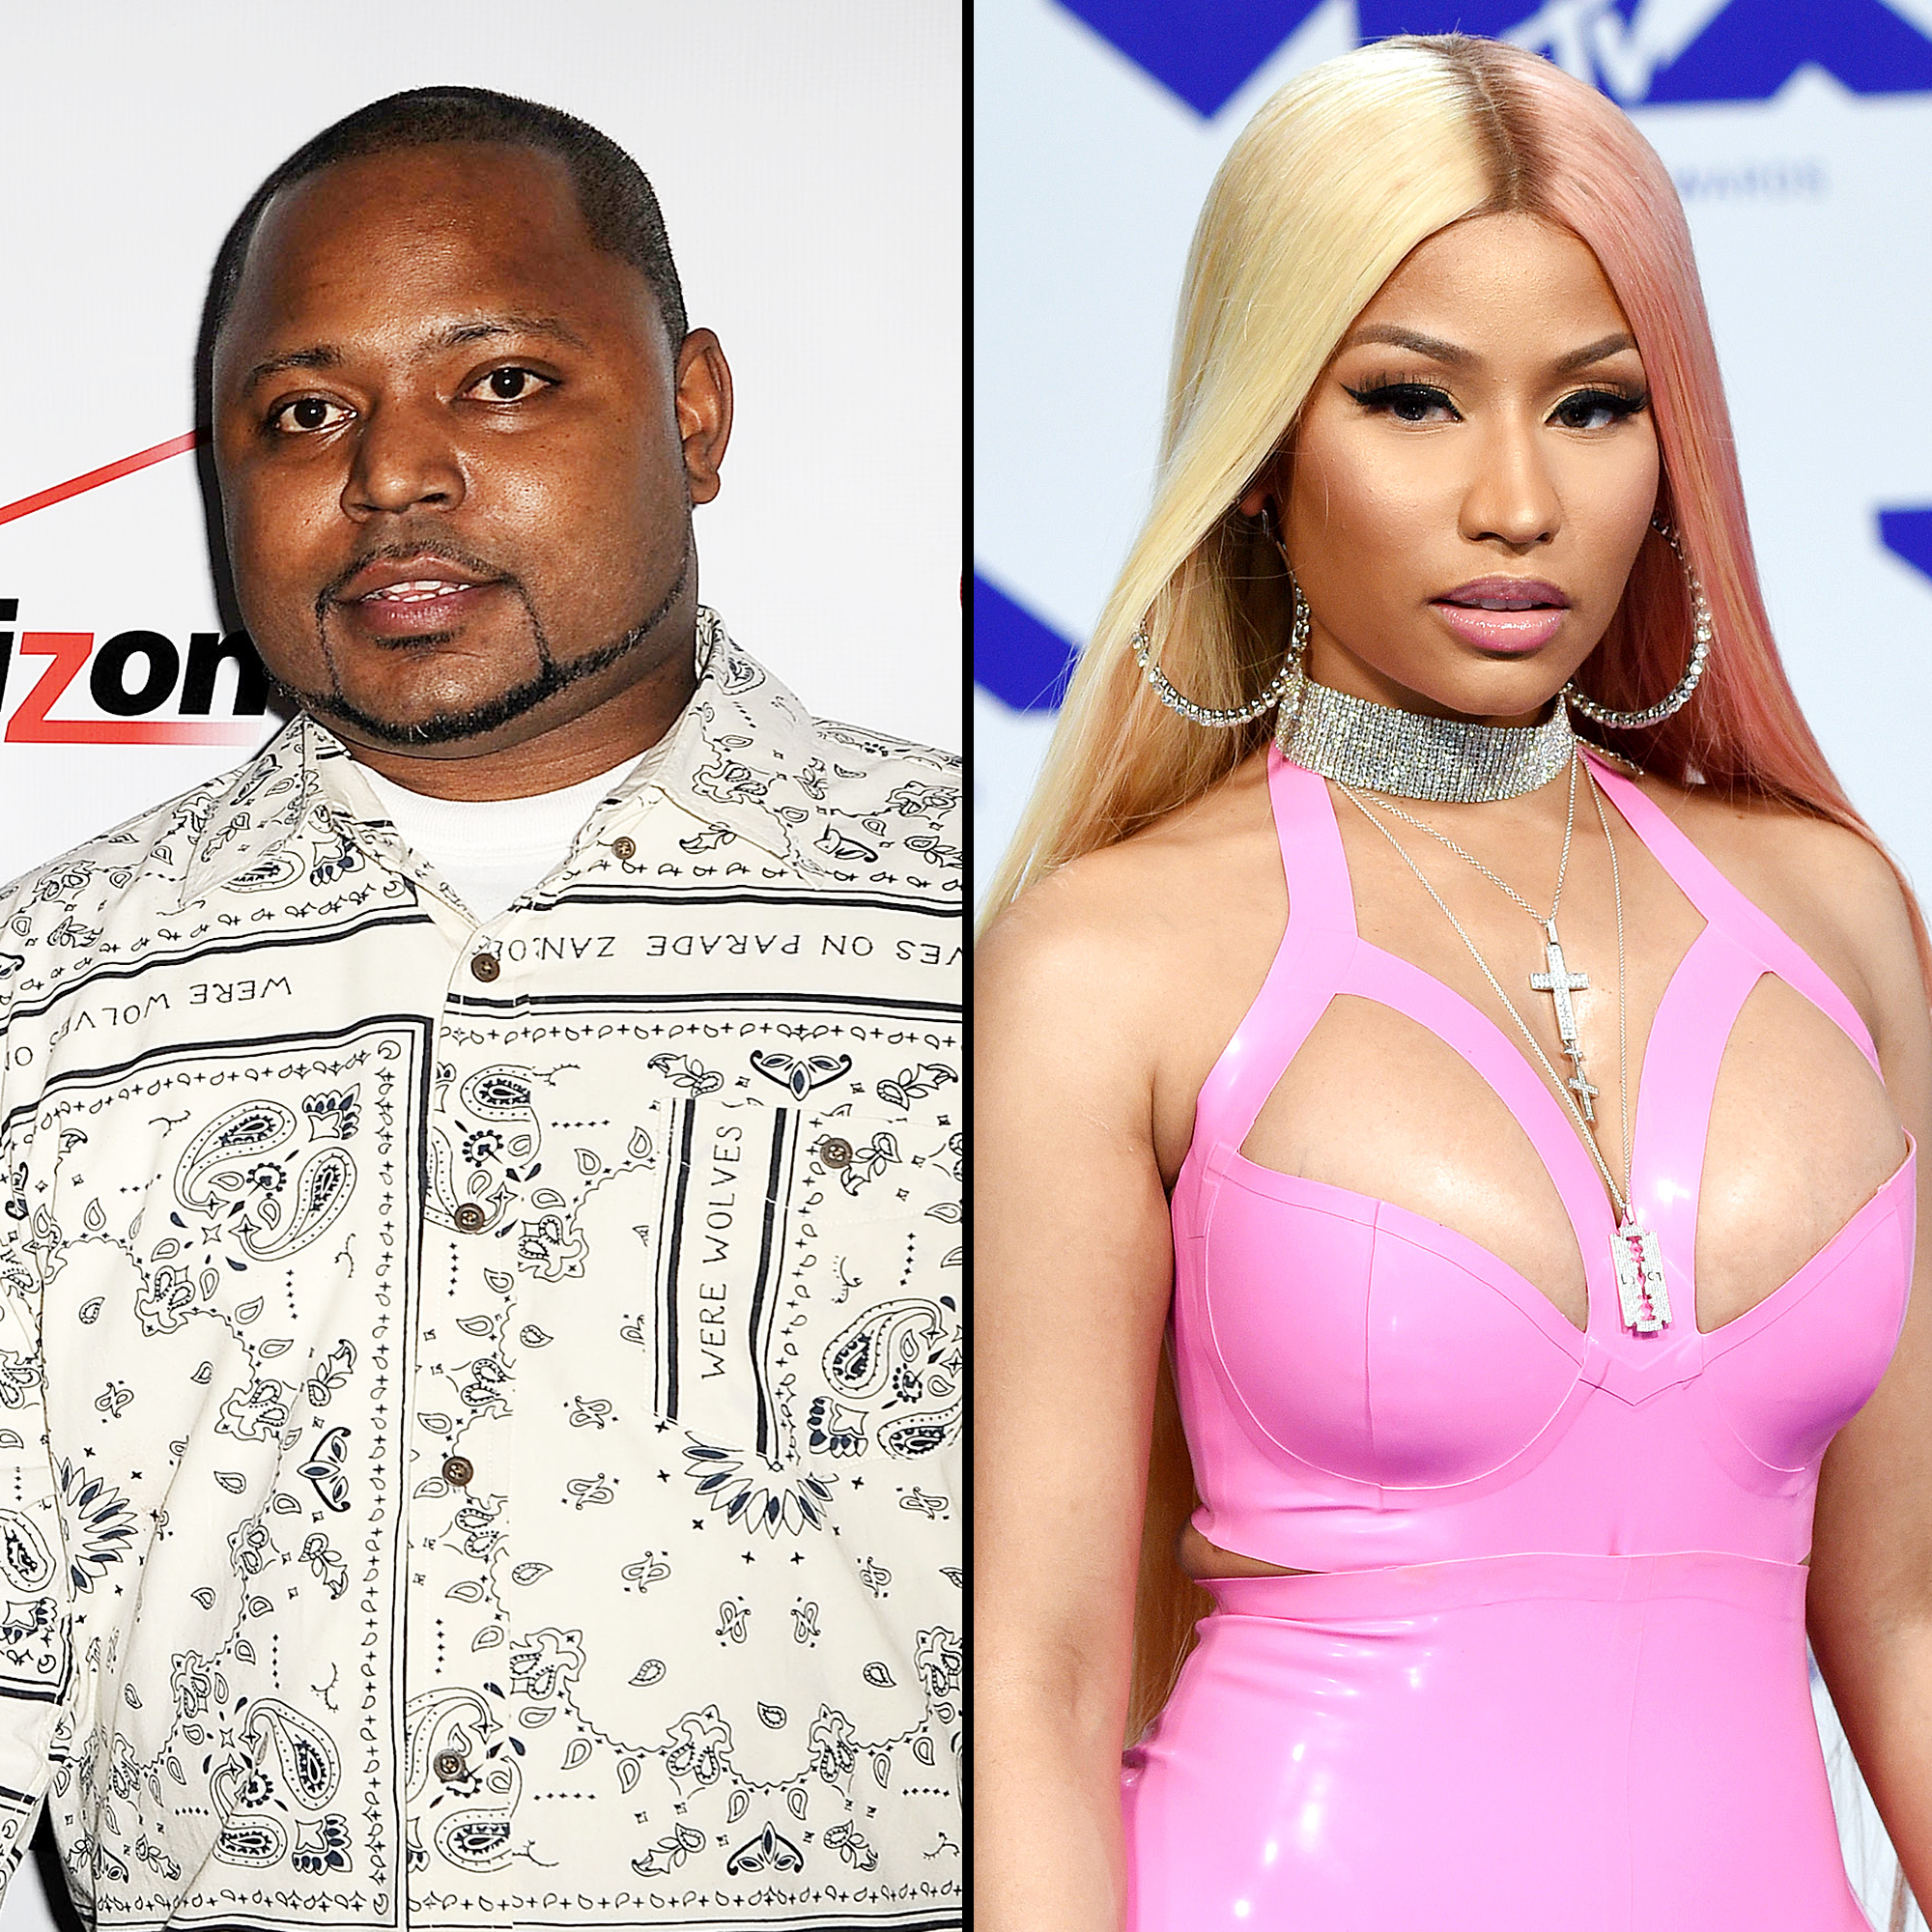 Nicki Minaj's brother is now a convicted rapist